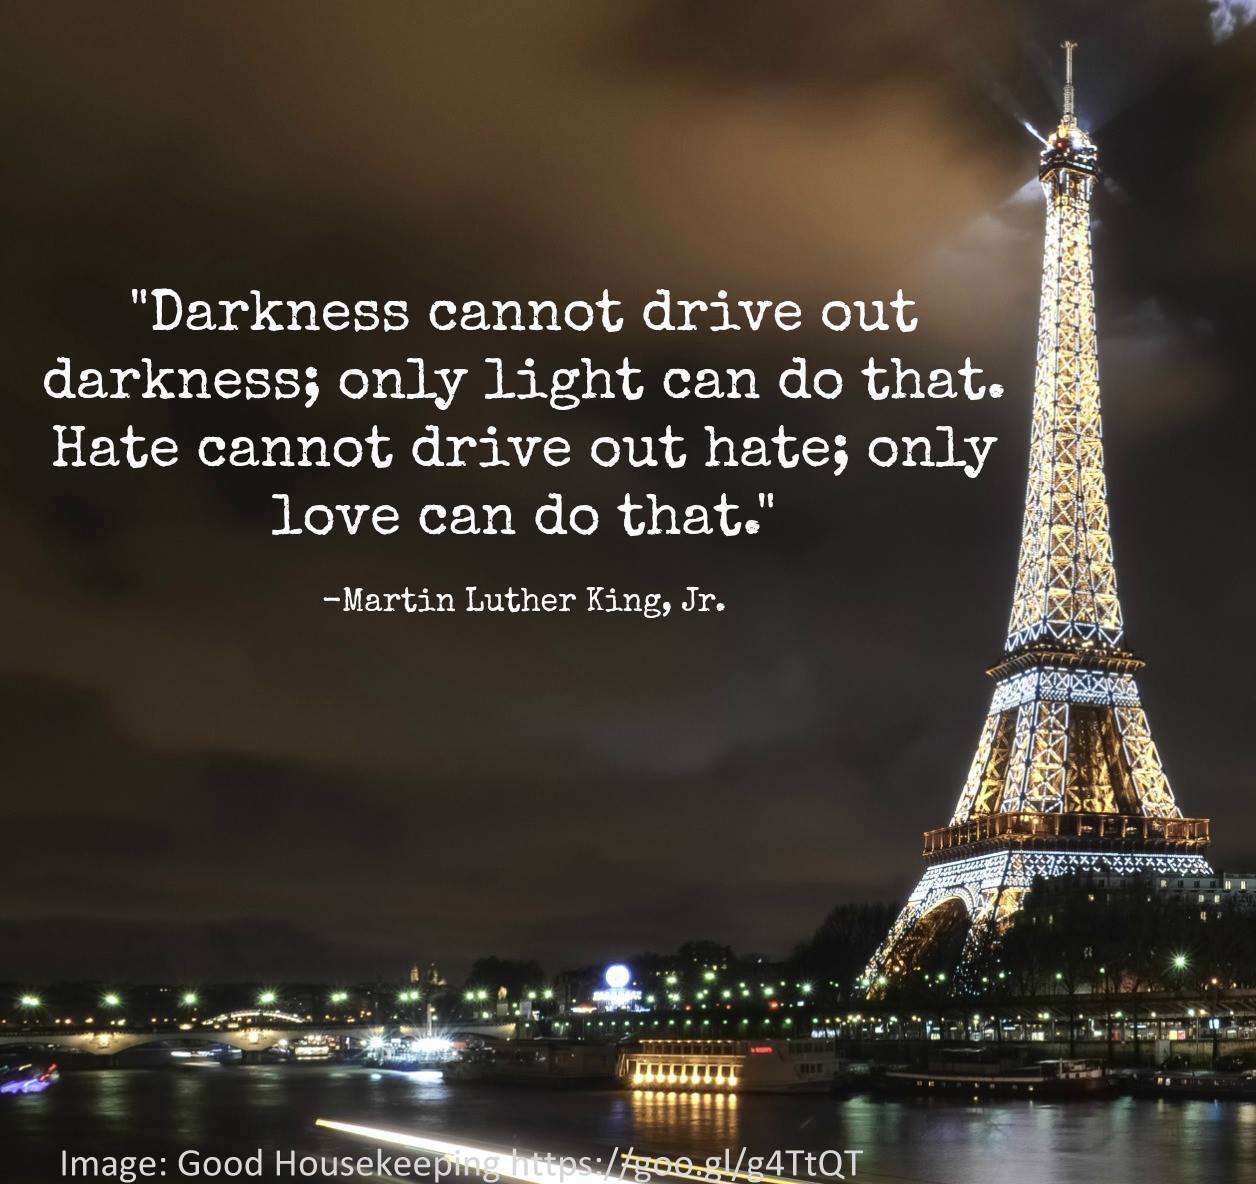 "Quote from Martin Luther King - ""Darkness cannot drive out darkness; only light can do that.  Hate cannot drive out hate; only love can do that."""